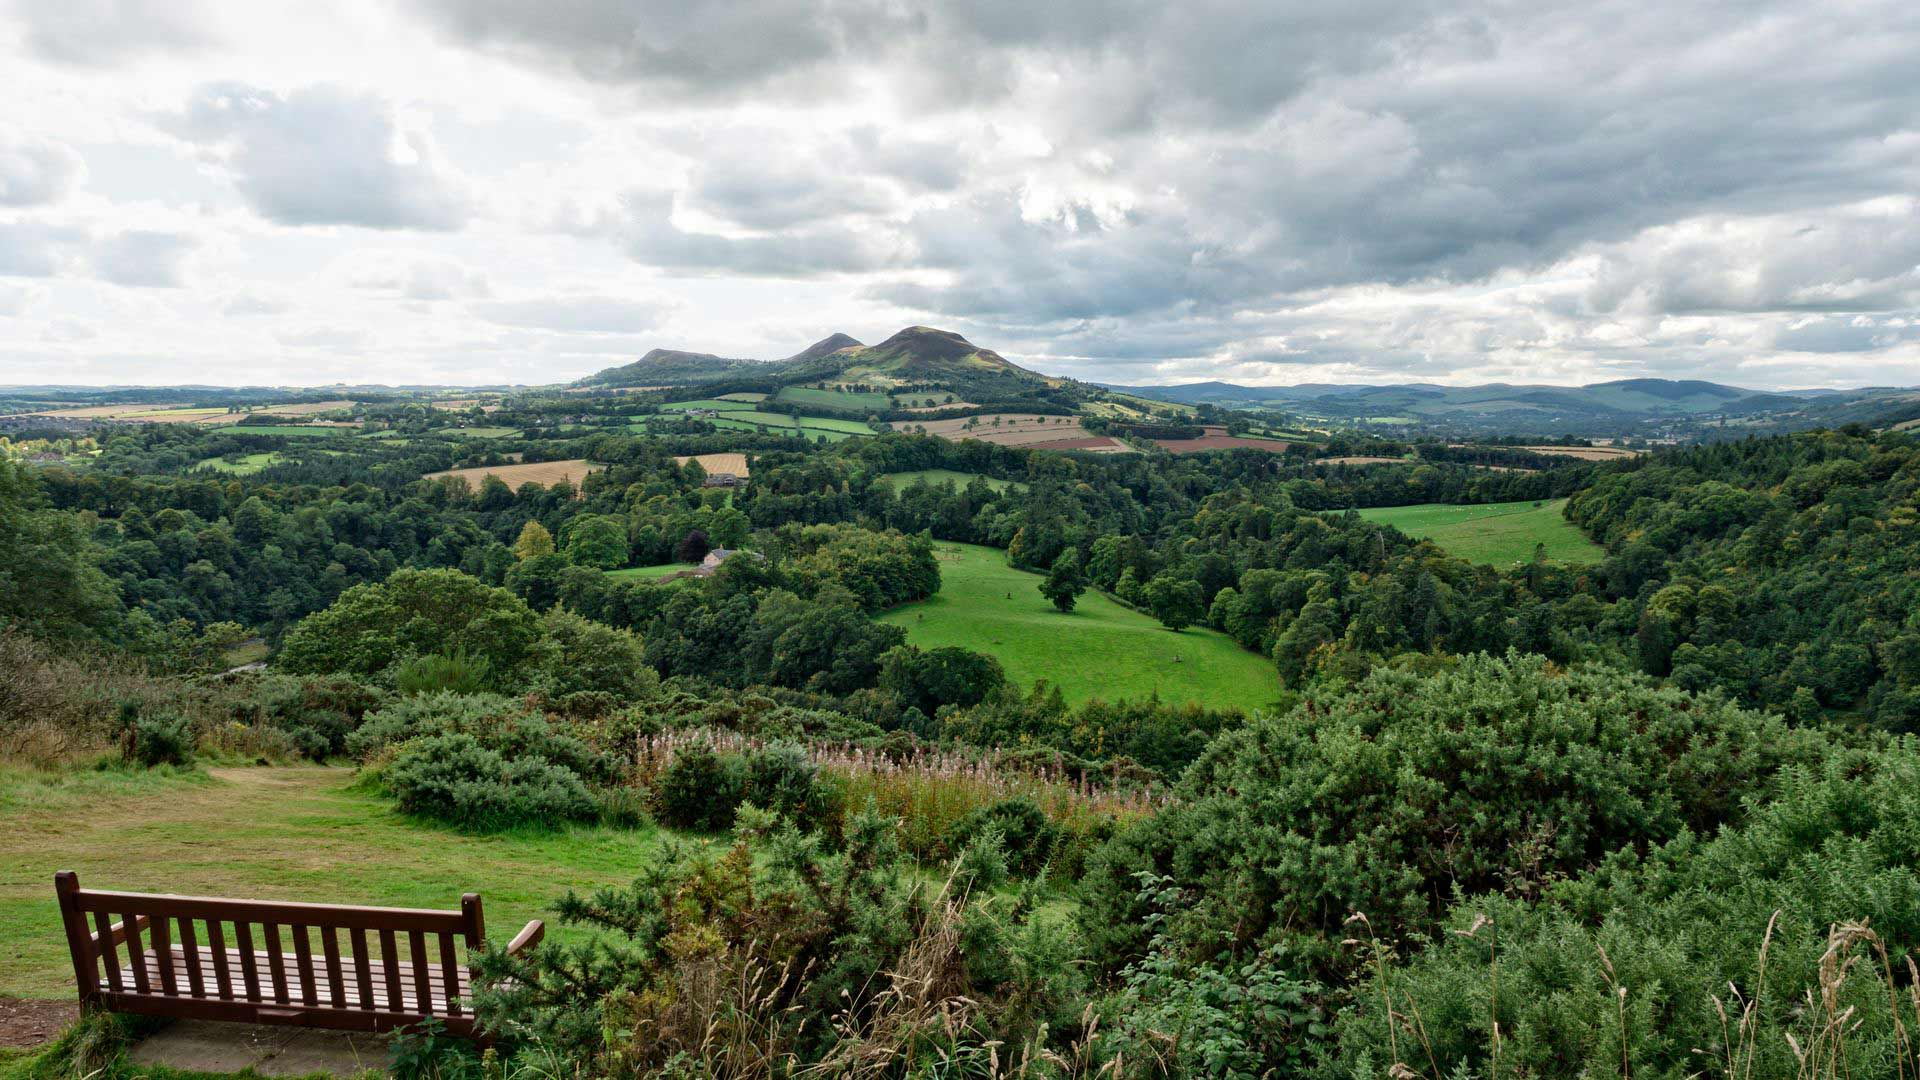 Scott's View in Scottish Borders - Dolfilms@DepositPhotos